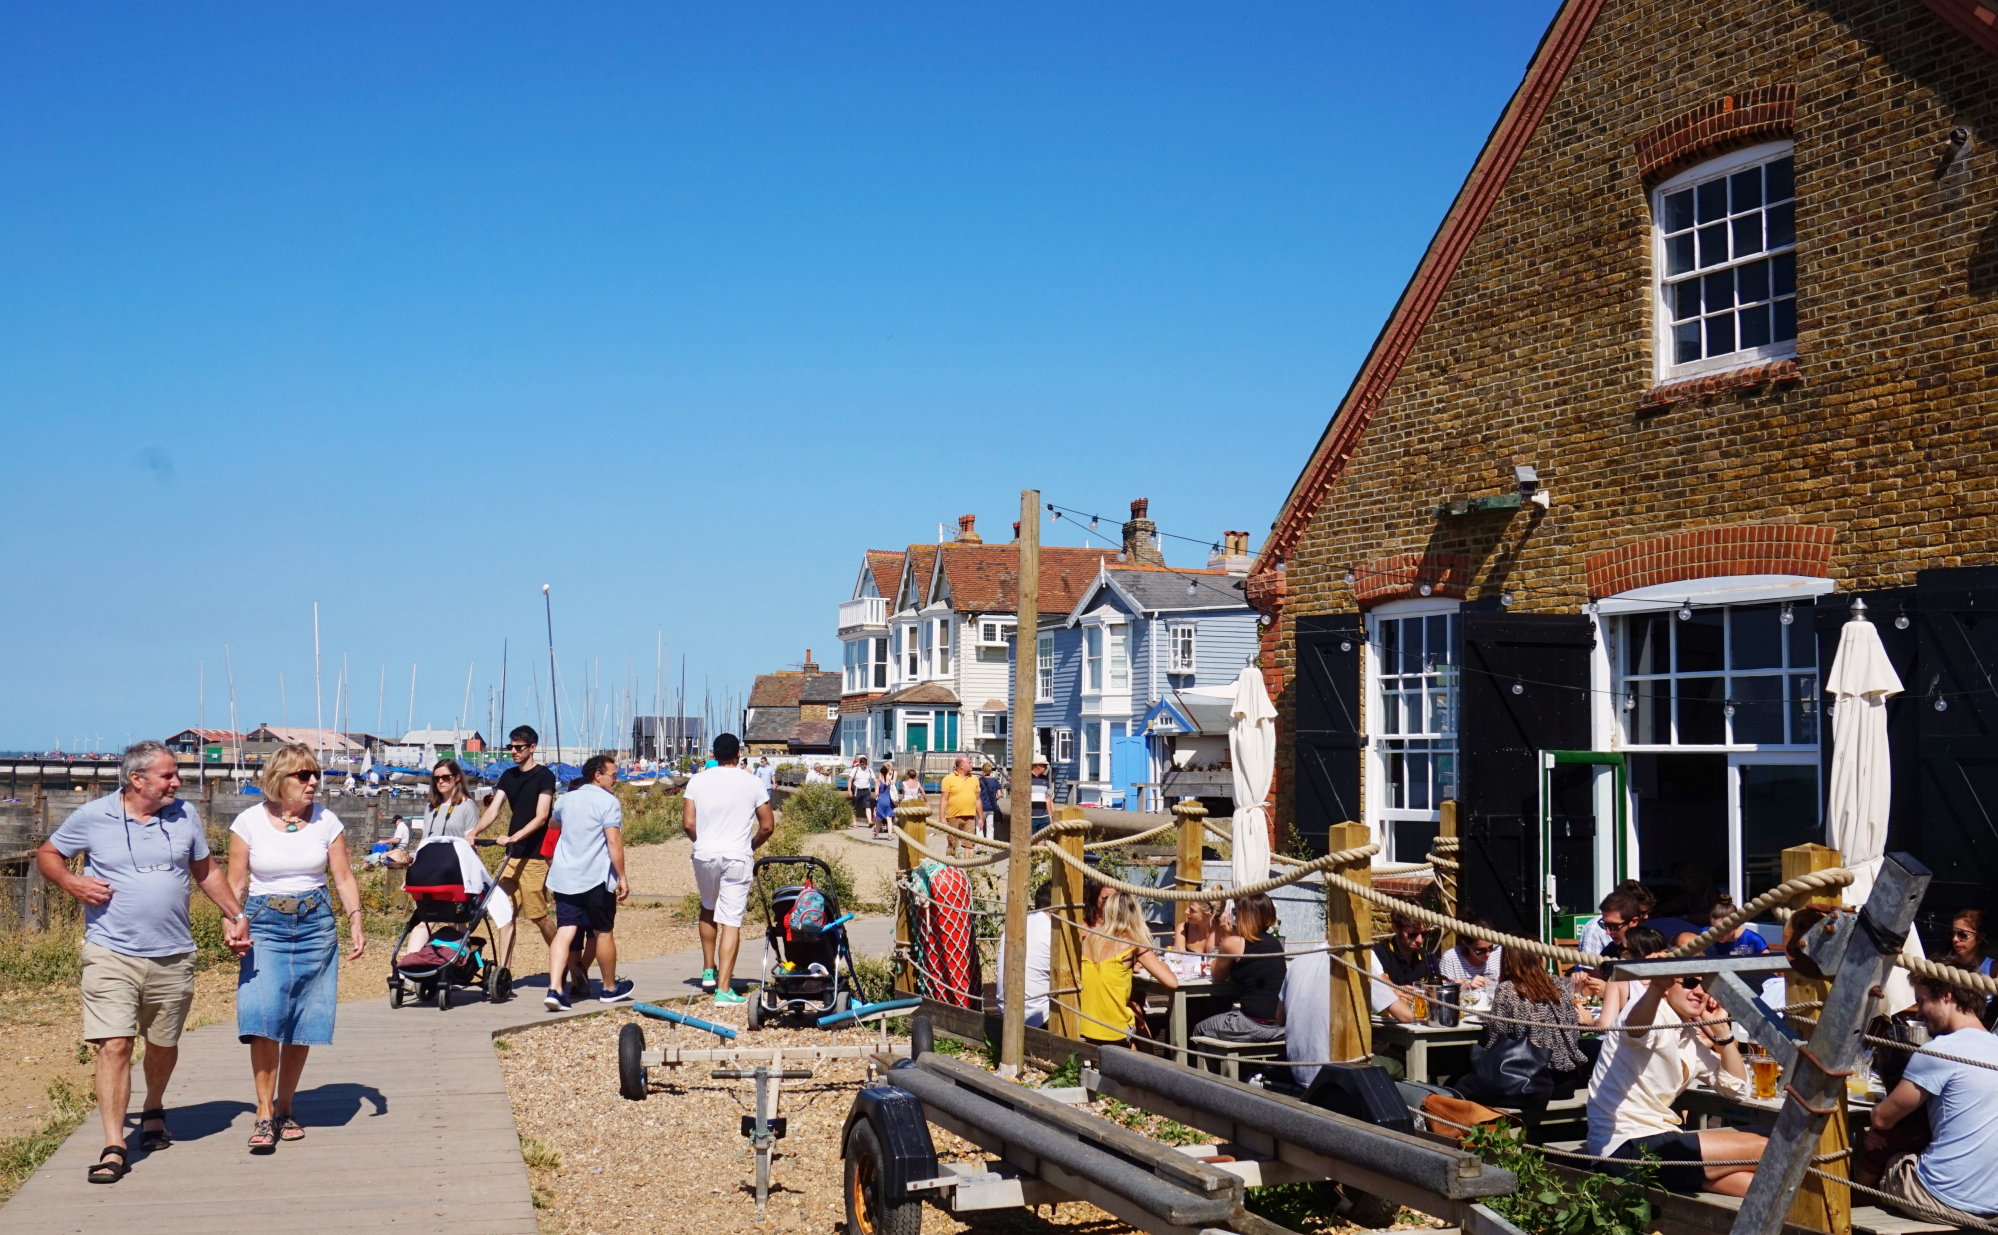 Whitstable-16